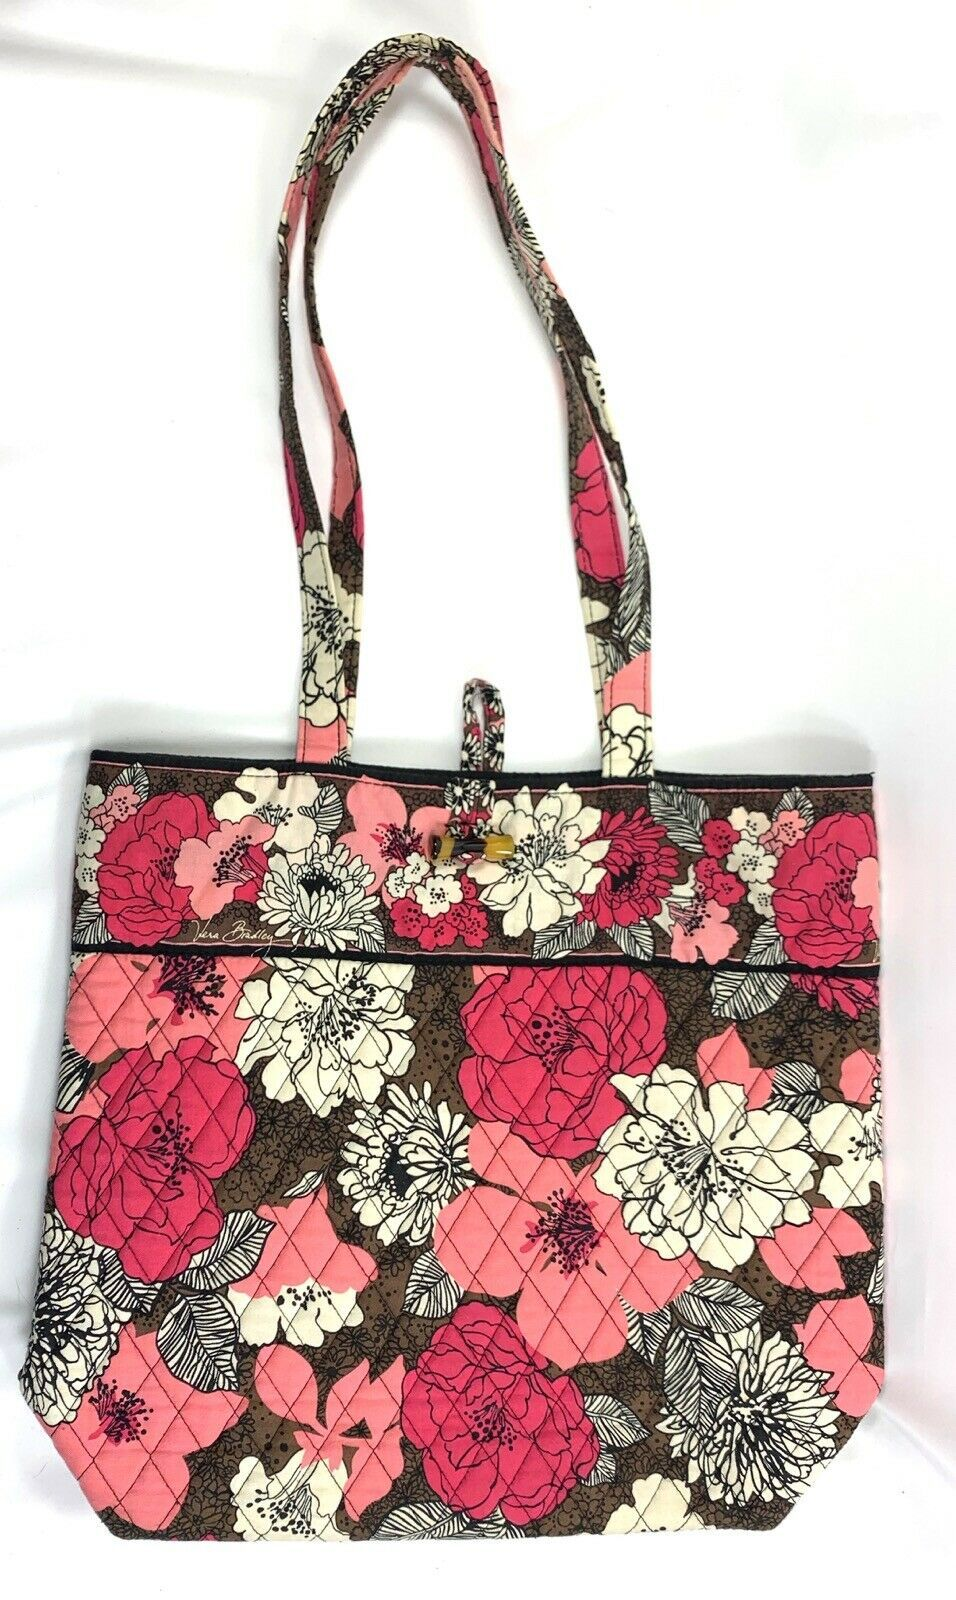 Vera Bradley Floral Motif Tote Hand Bag • Excellent • FREE Shipping